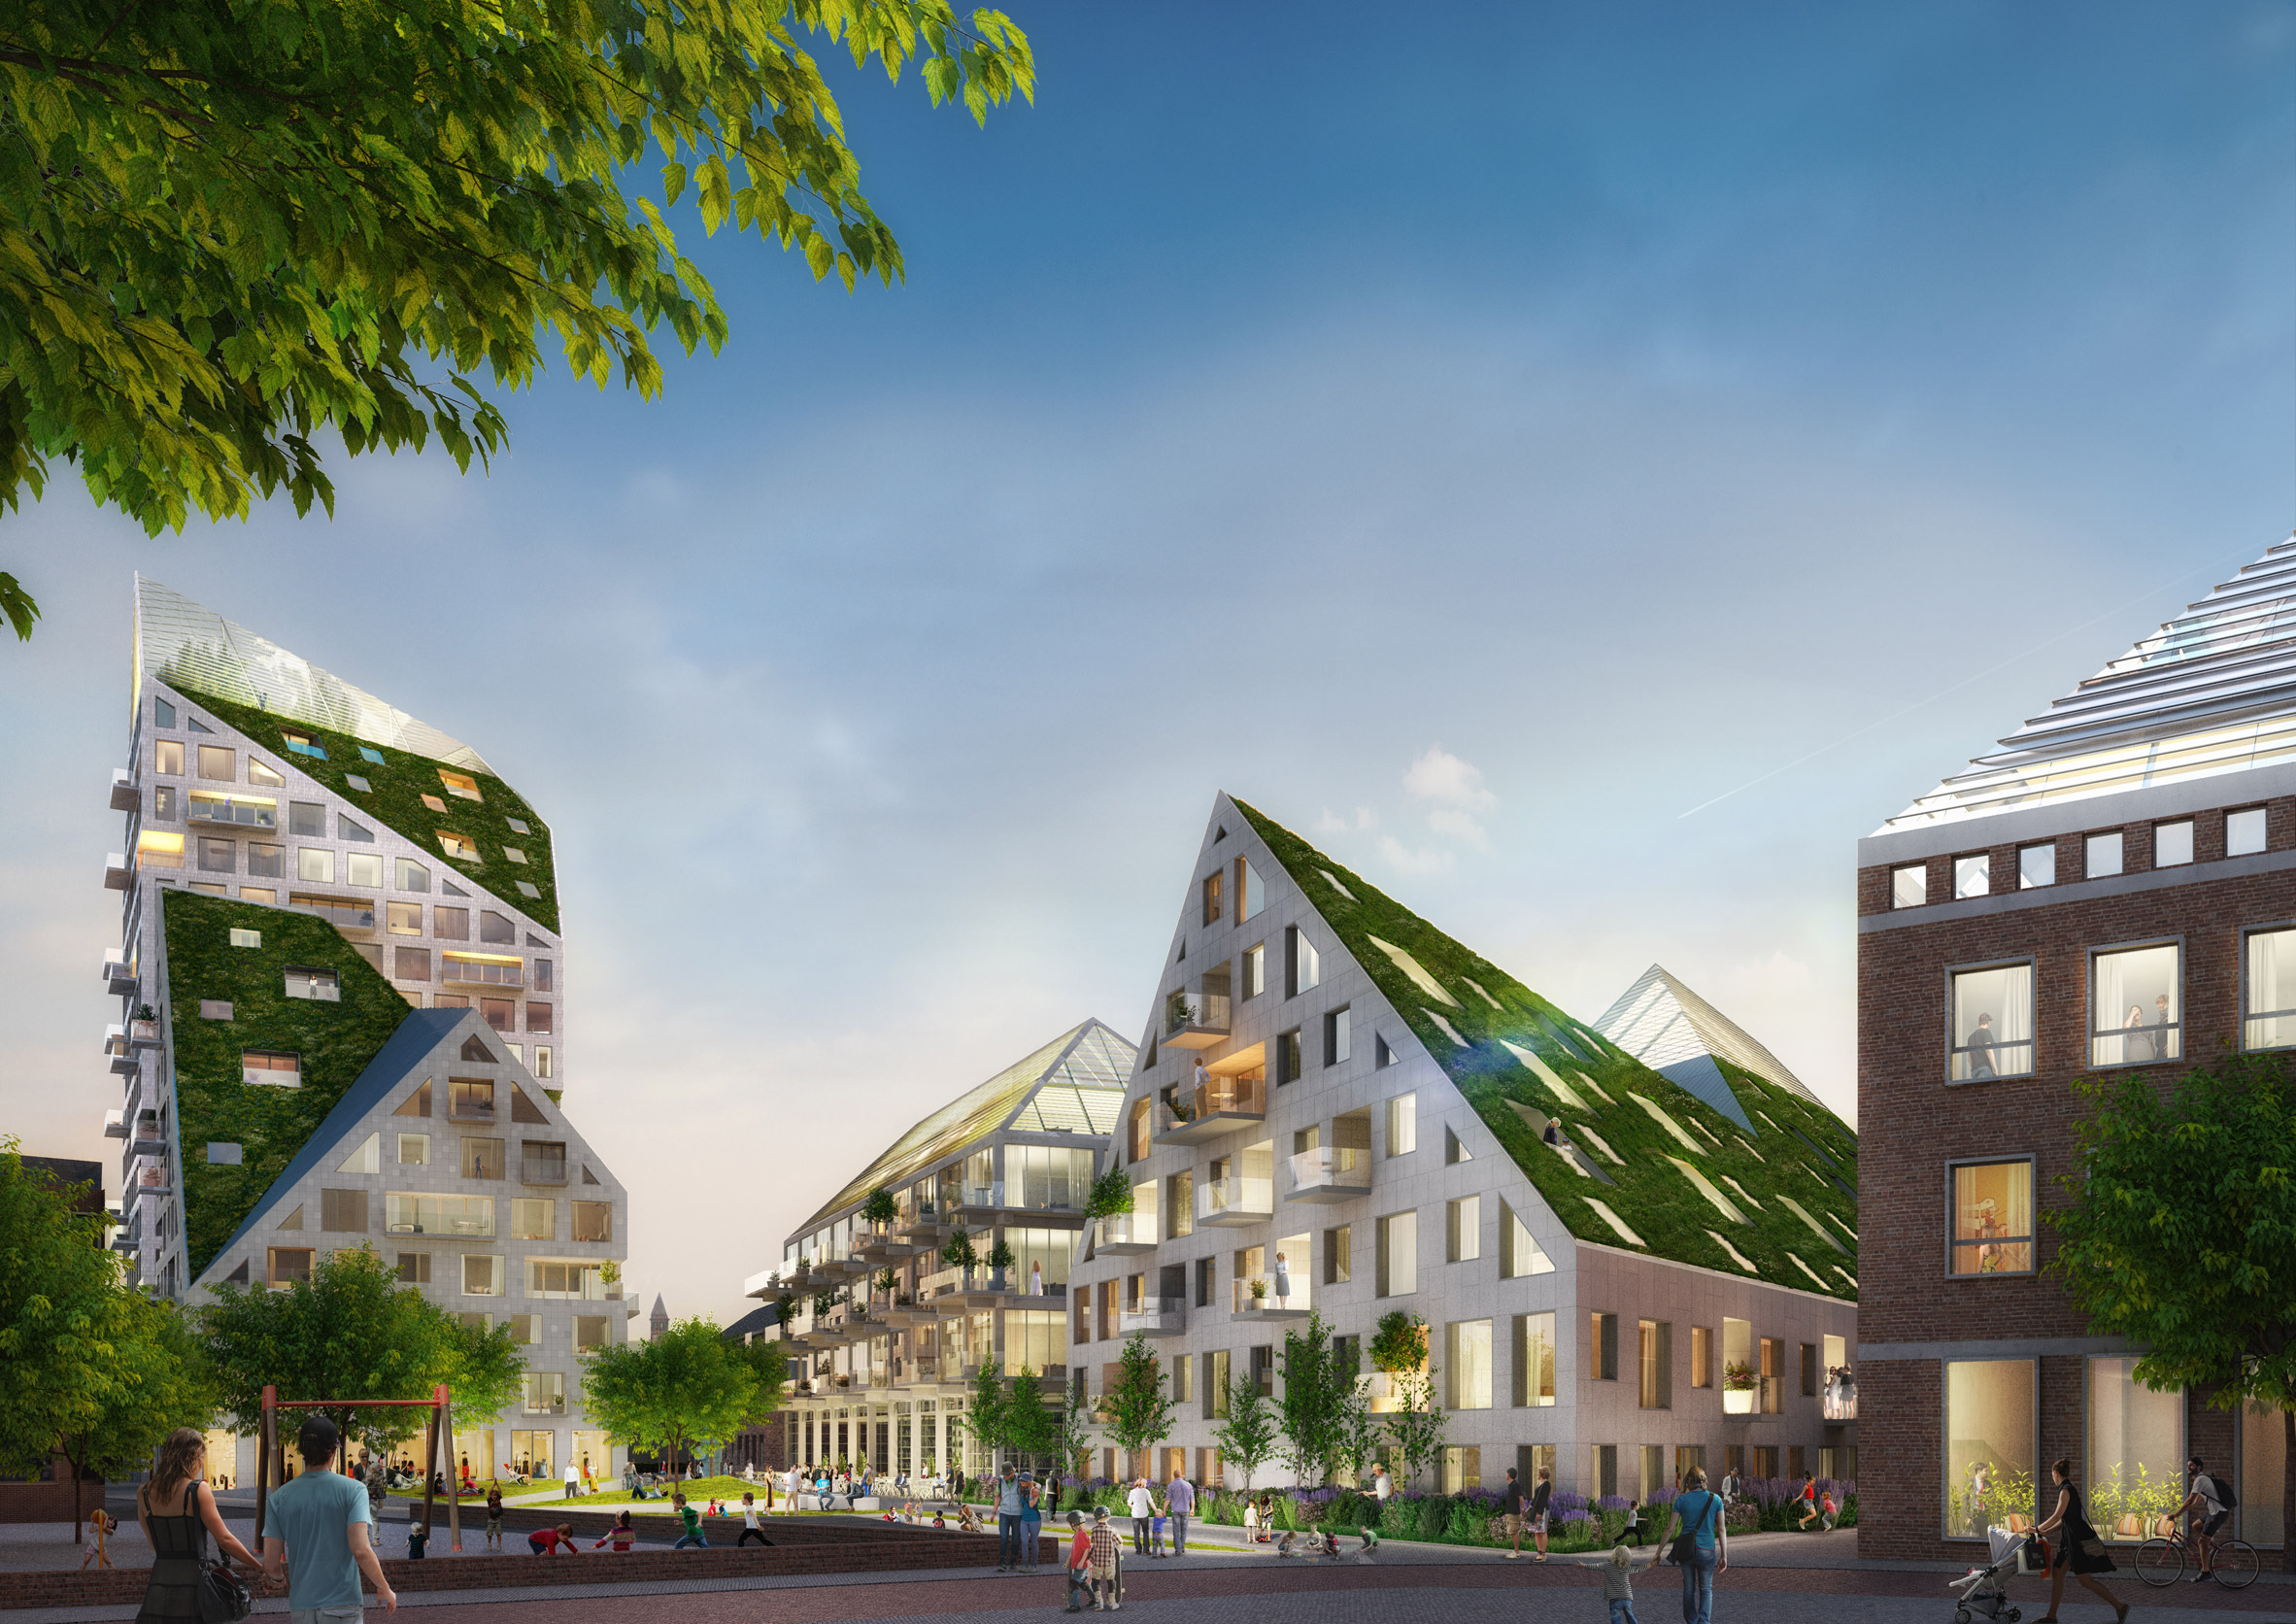 In 2017, MVRDV unveiled plans for a residential tower complex in Eindhoven, The Netherlands. It developed the jagged outline by drawing imaginary planes at 45-degree angles from the base of neighbouring residential buildings.